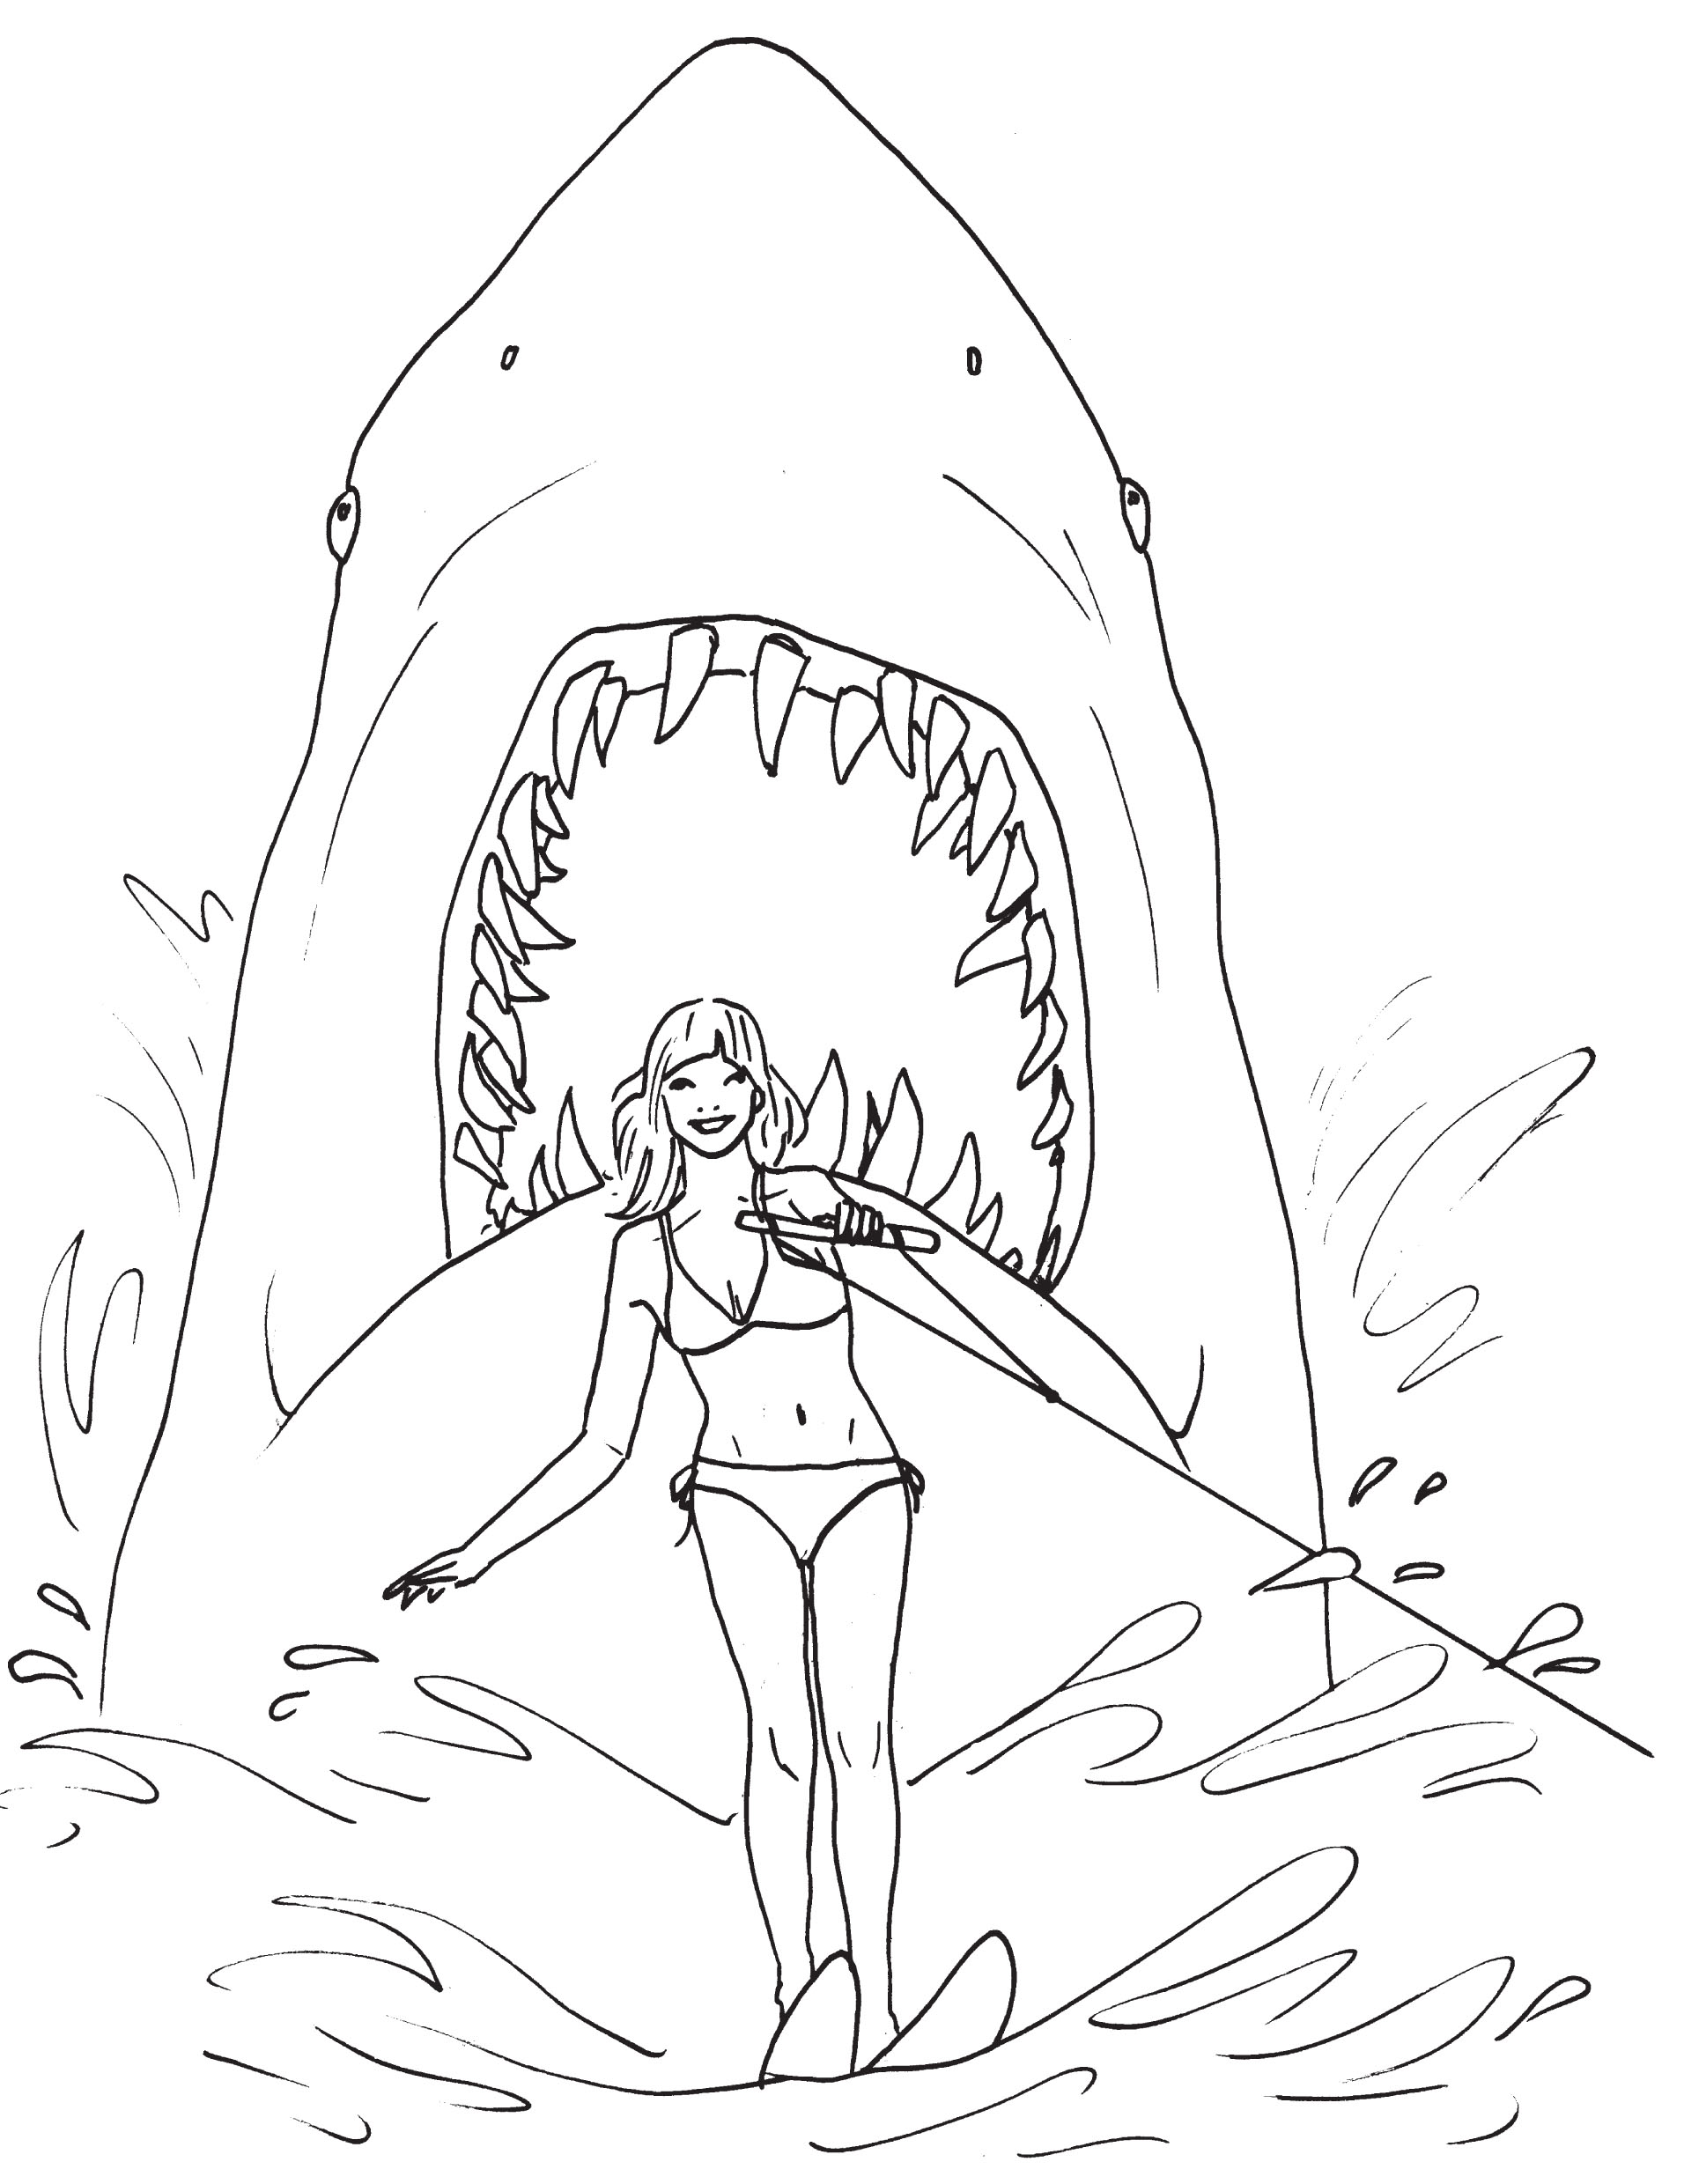 Free Shark Coloring Pages At Getdrawings Com Free For Personal Use